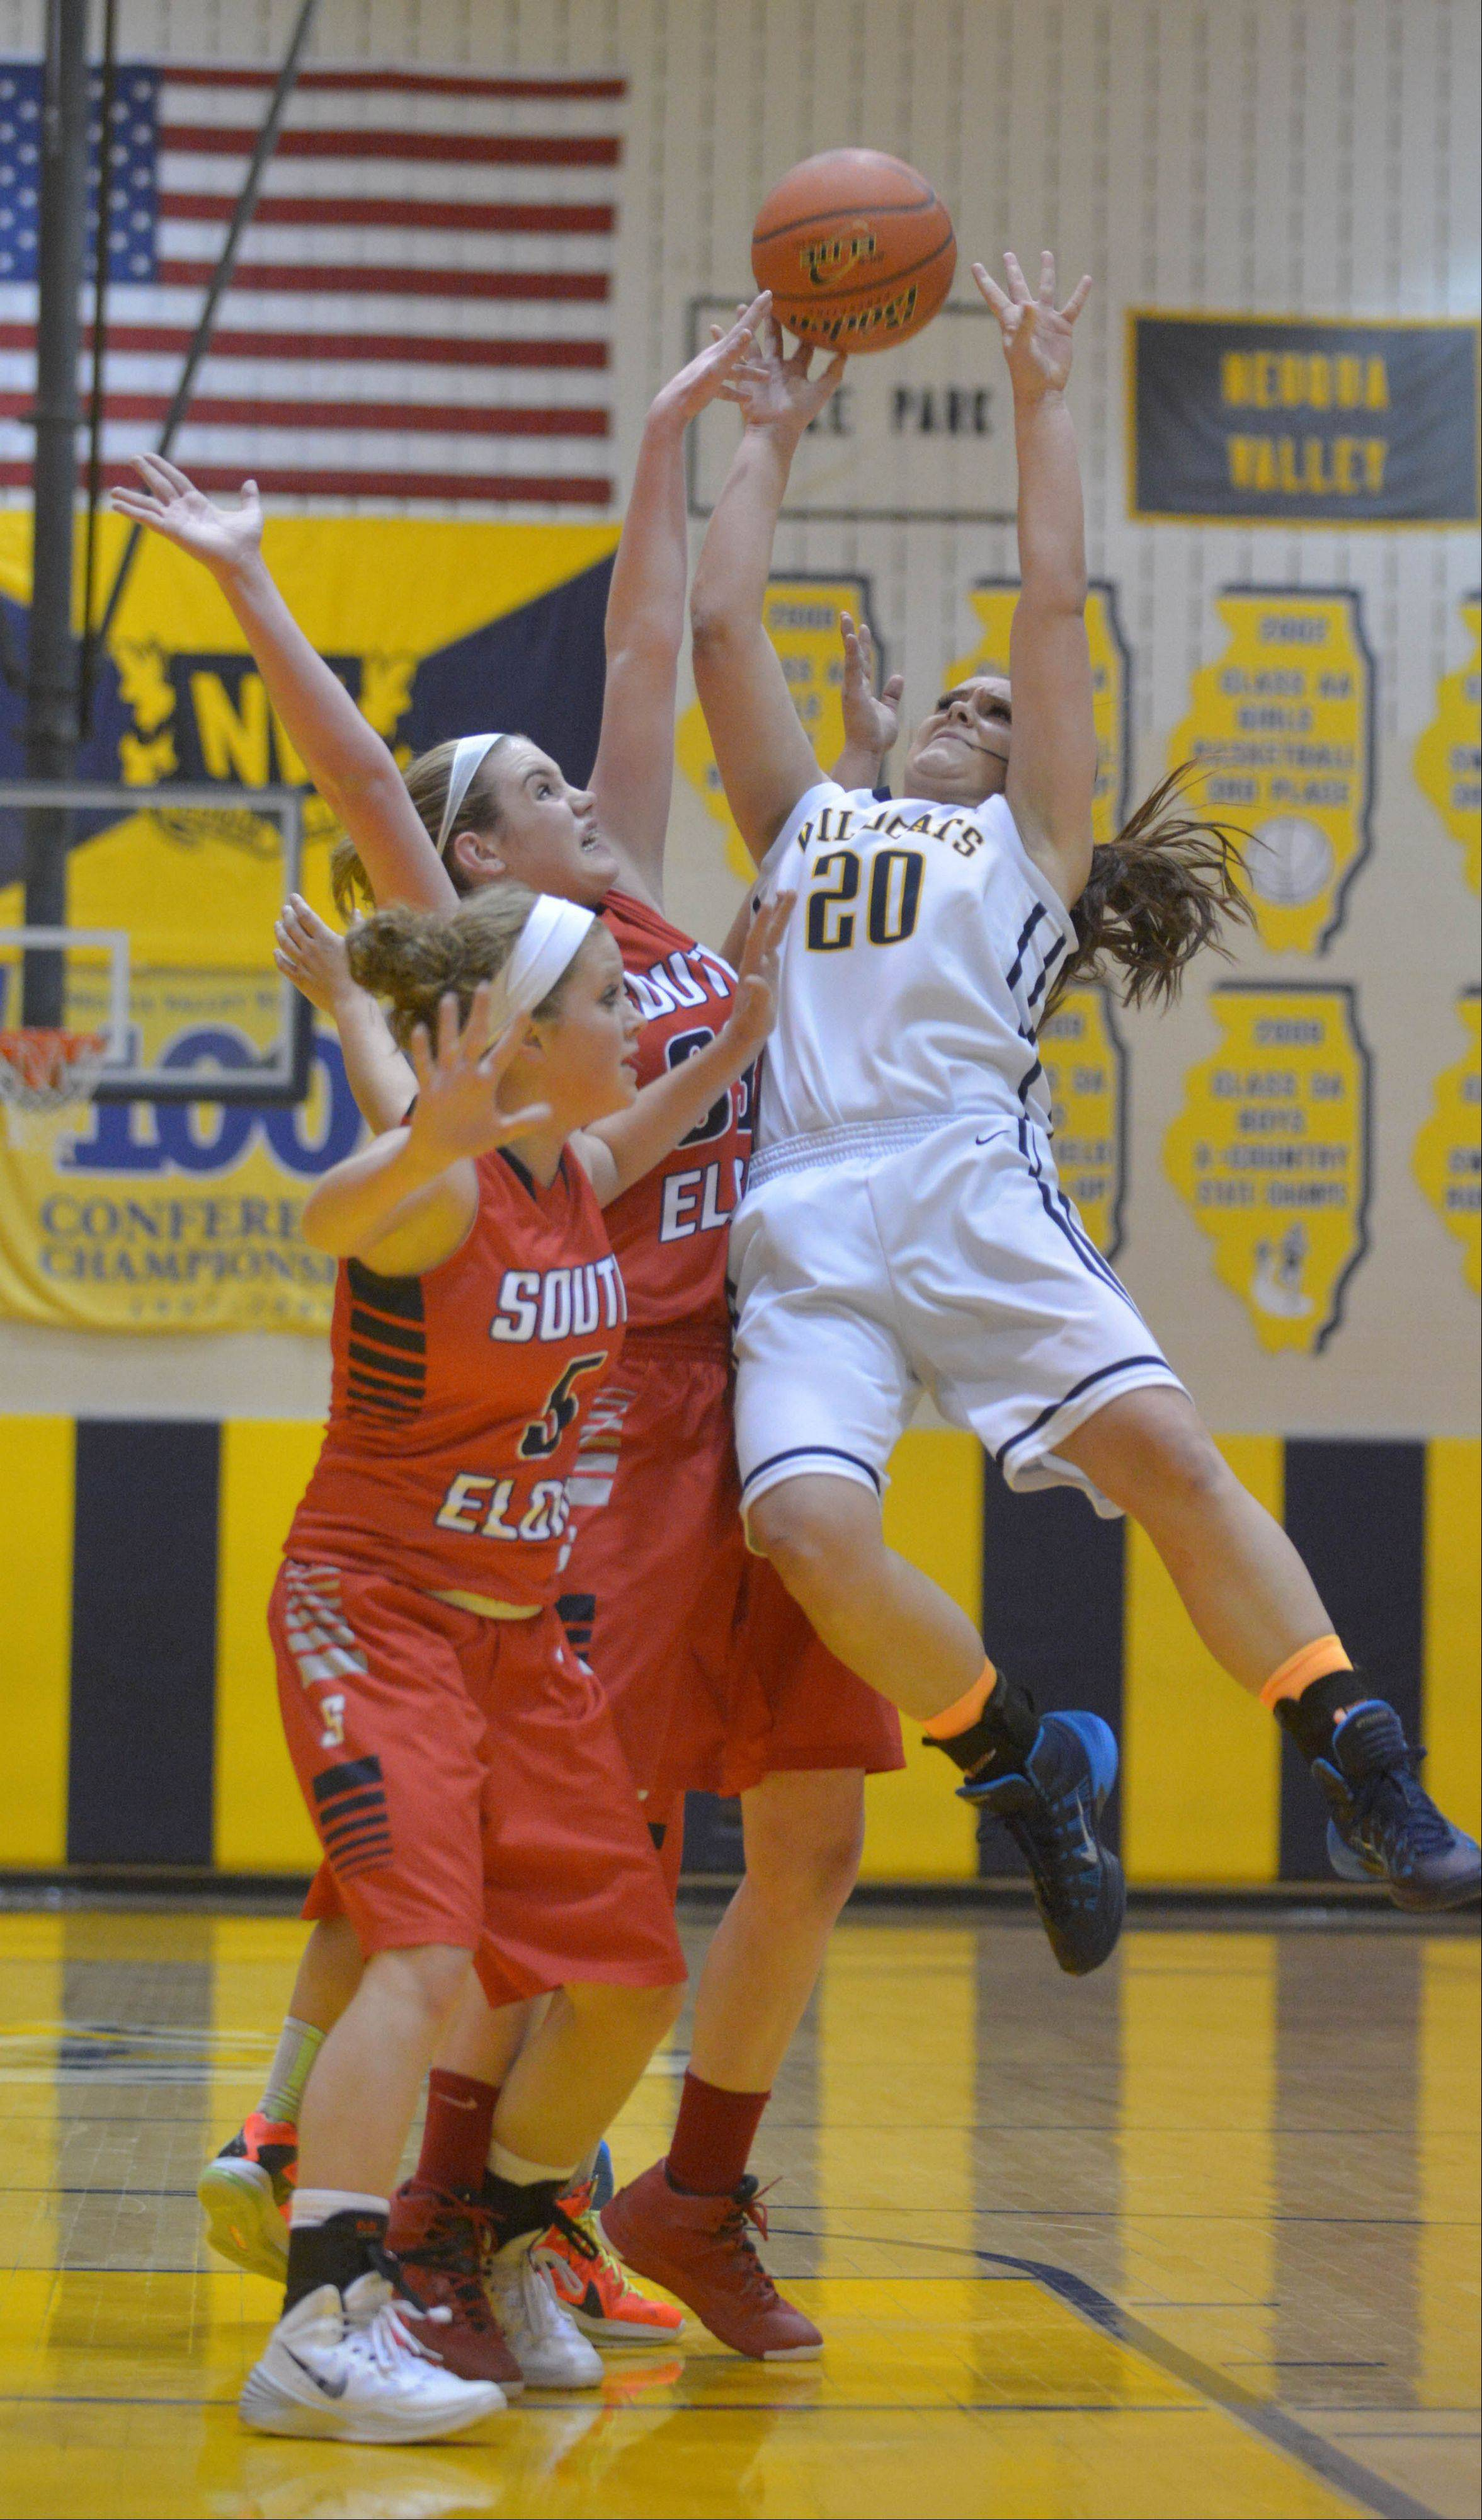 Anna Tracy,Mackie Kelleher, of South Elgin go for a rebound with Niki Lazar of Neuqua during the South Elgin at Neuqua Valley girls basketball game Wednesday.